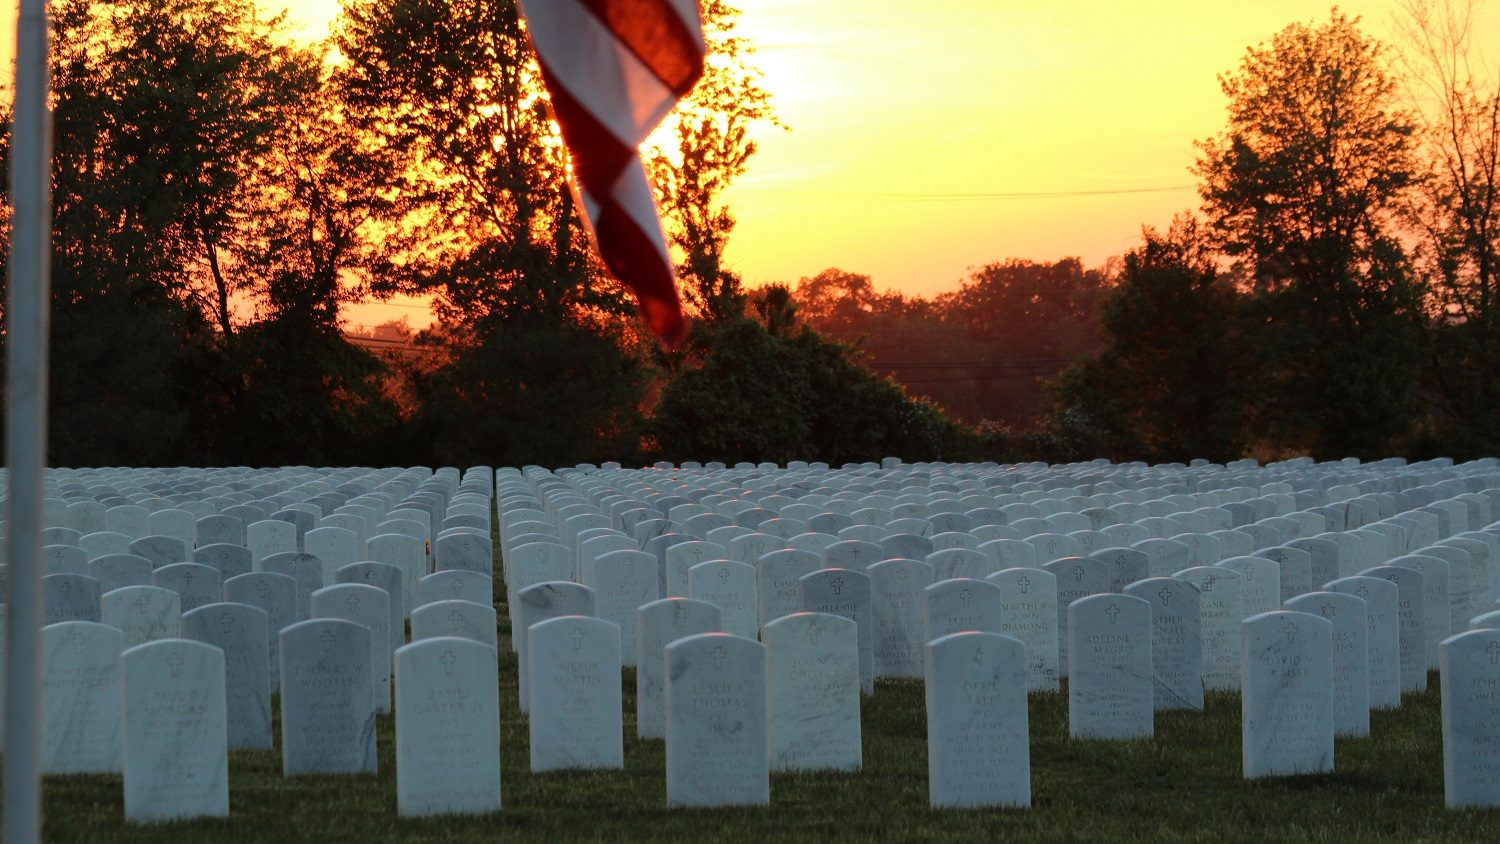 A field of grave stones with a sunset in the background